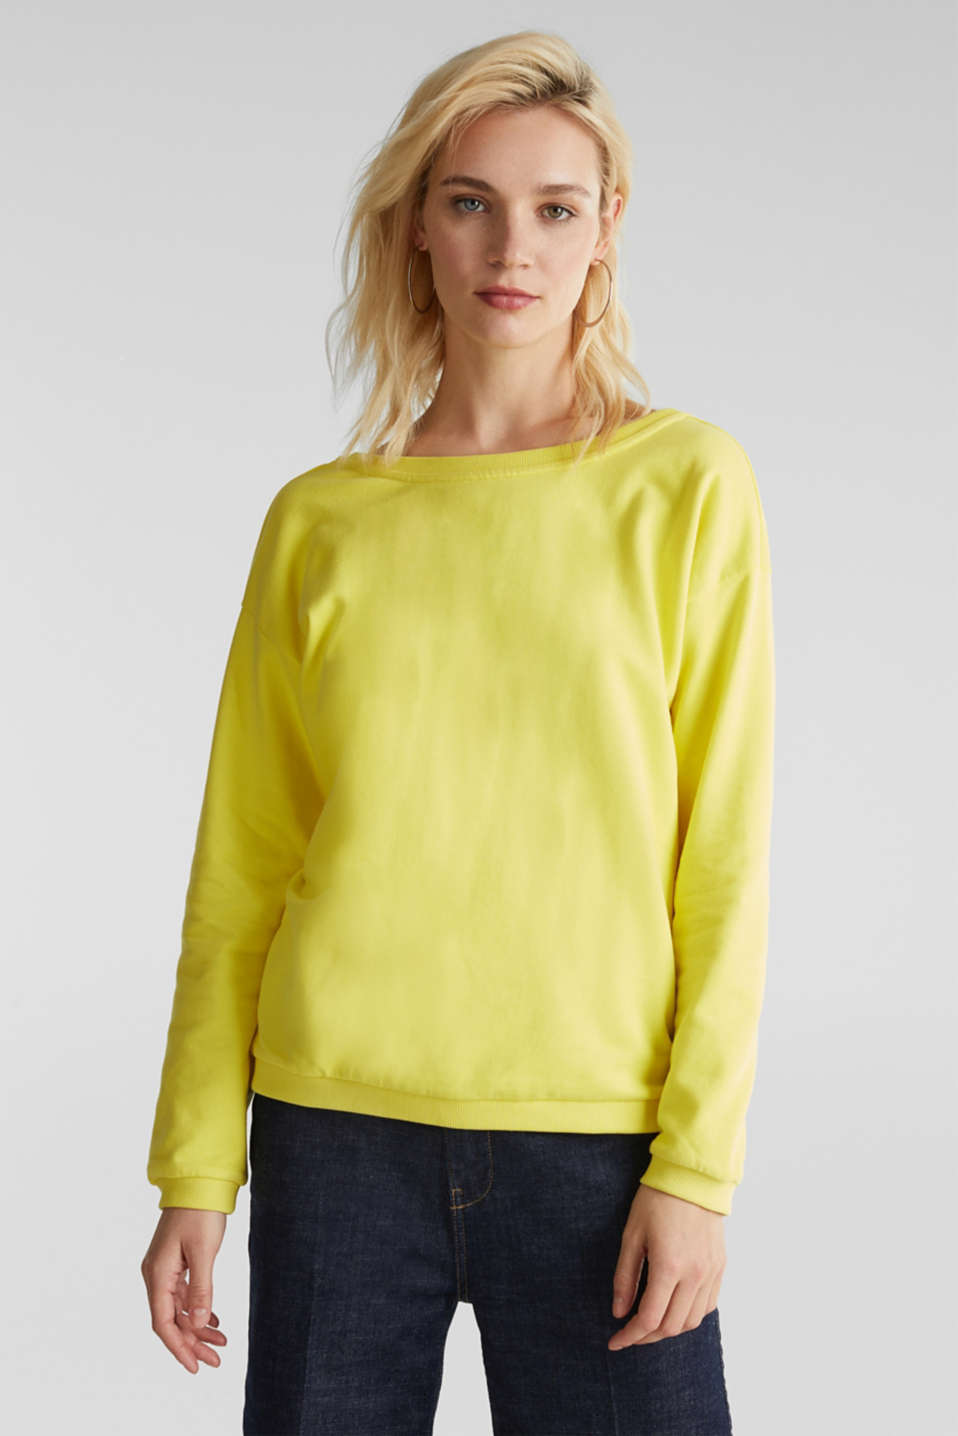 Sweatshirt with a back neckline, BRIGHT YELLOW, detail image number 0